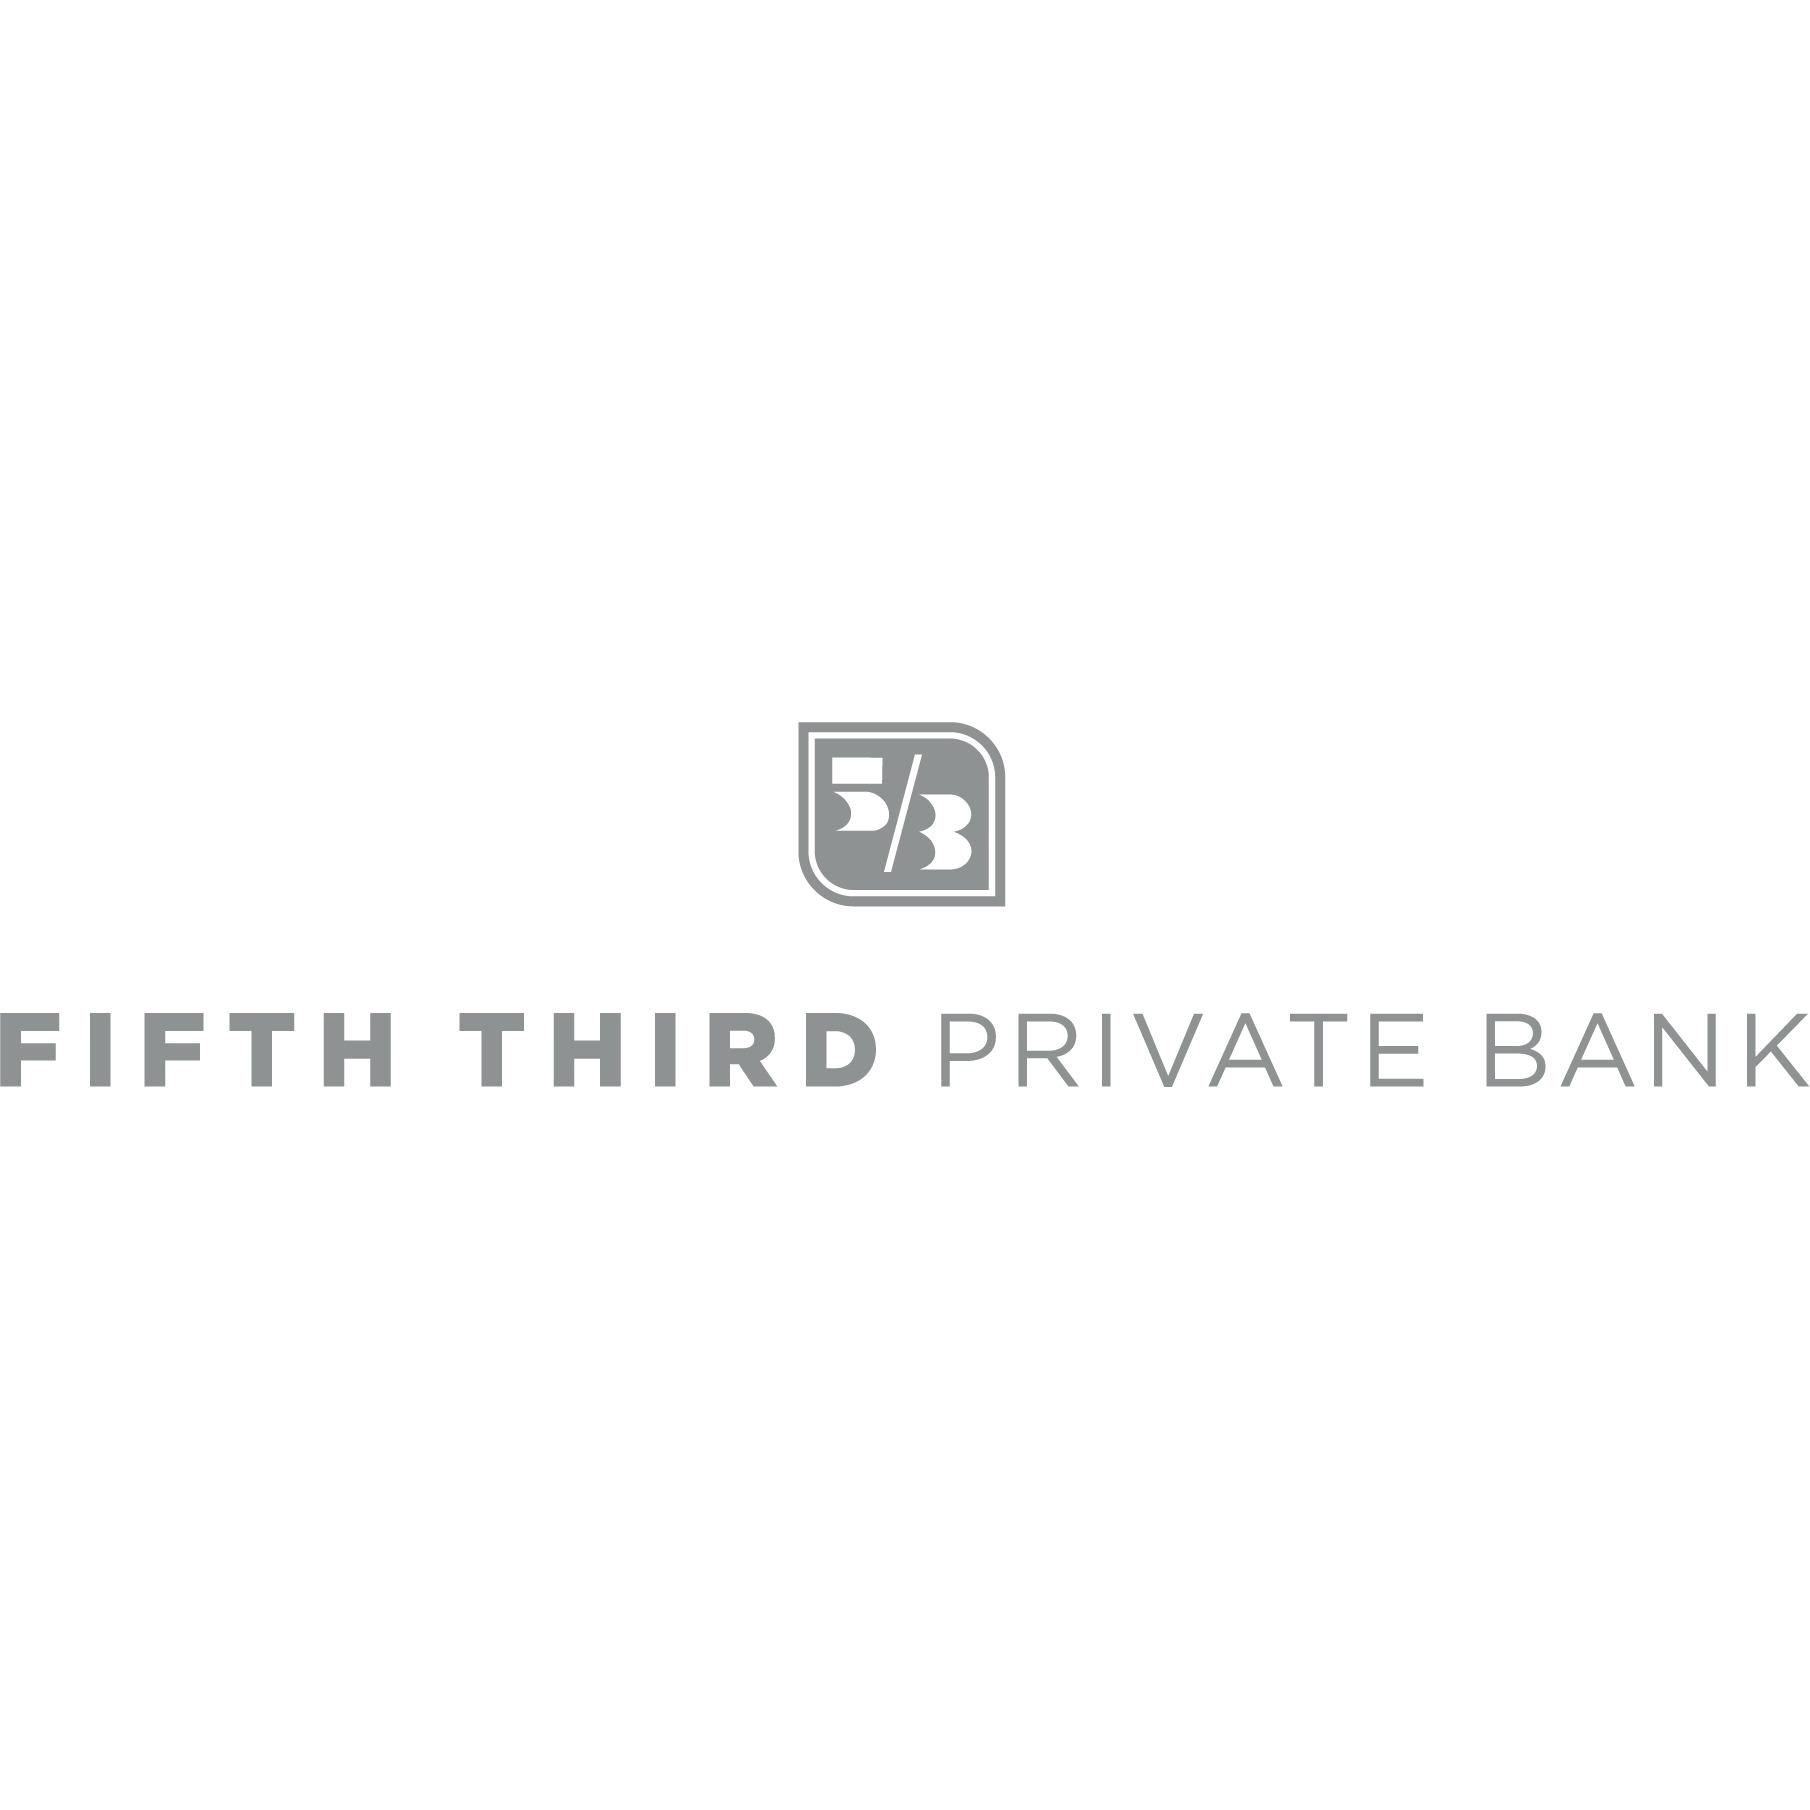 Fifth Third Private Bank - Thomas Nerney